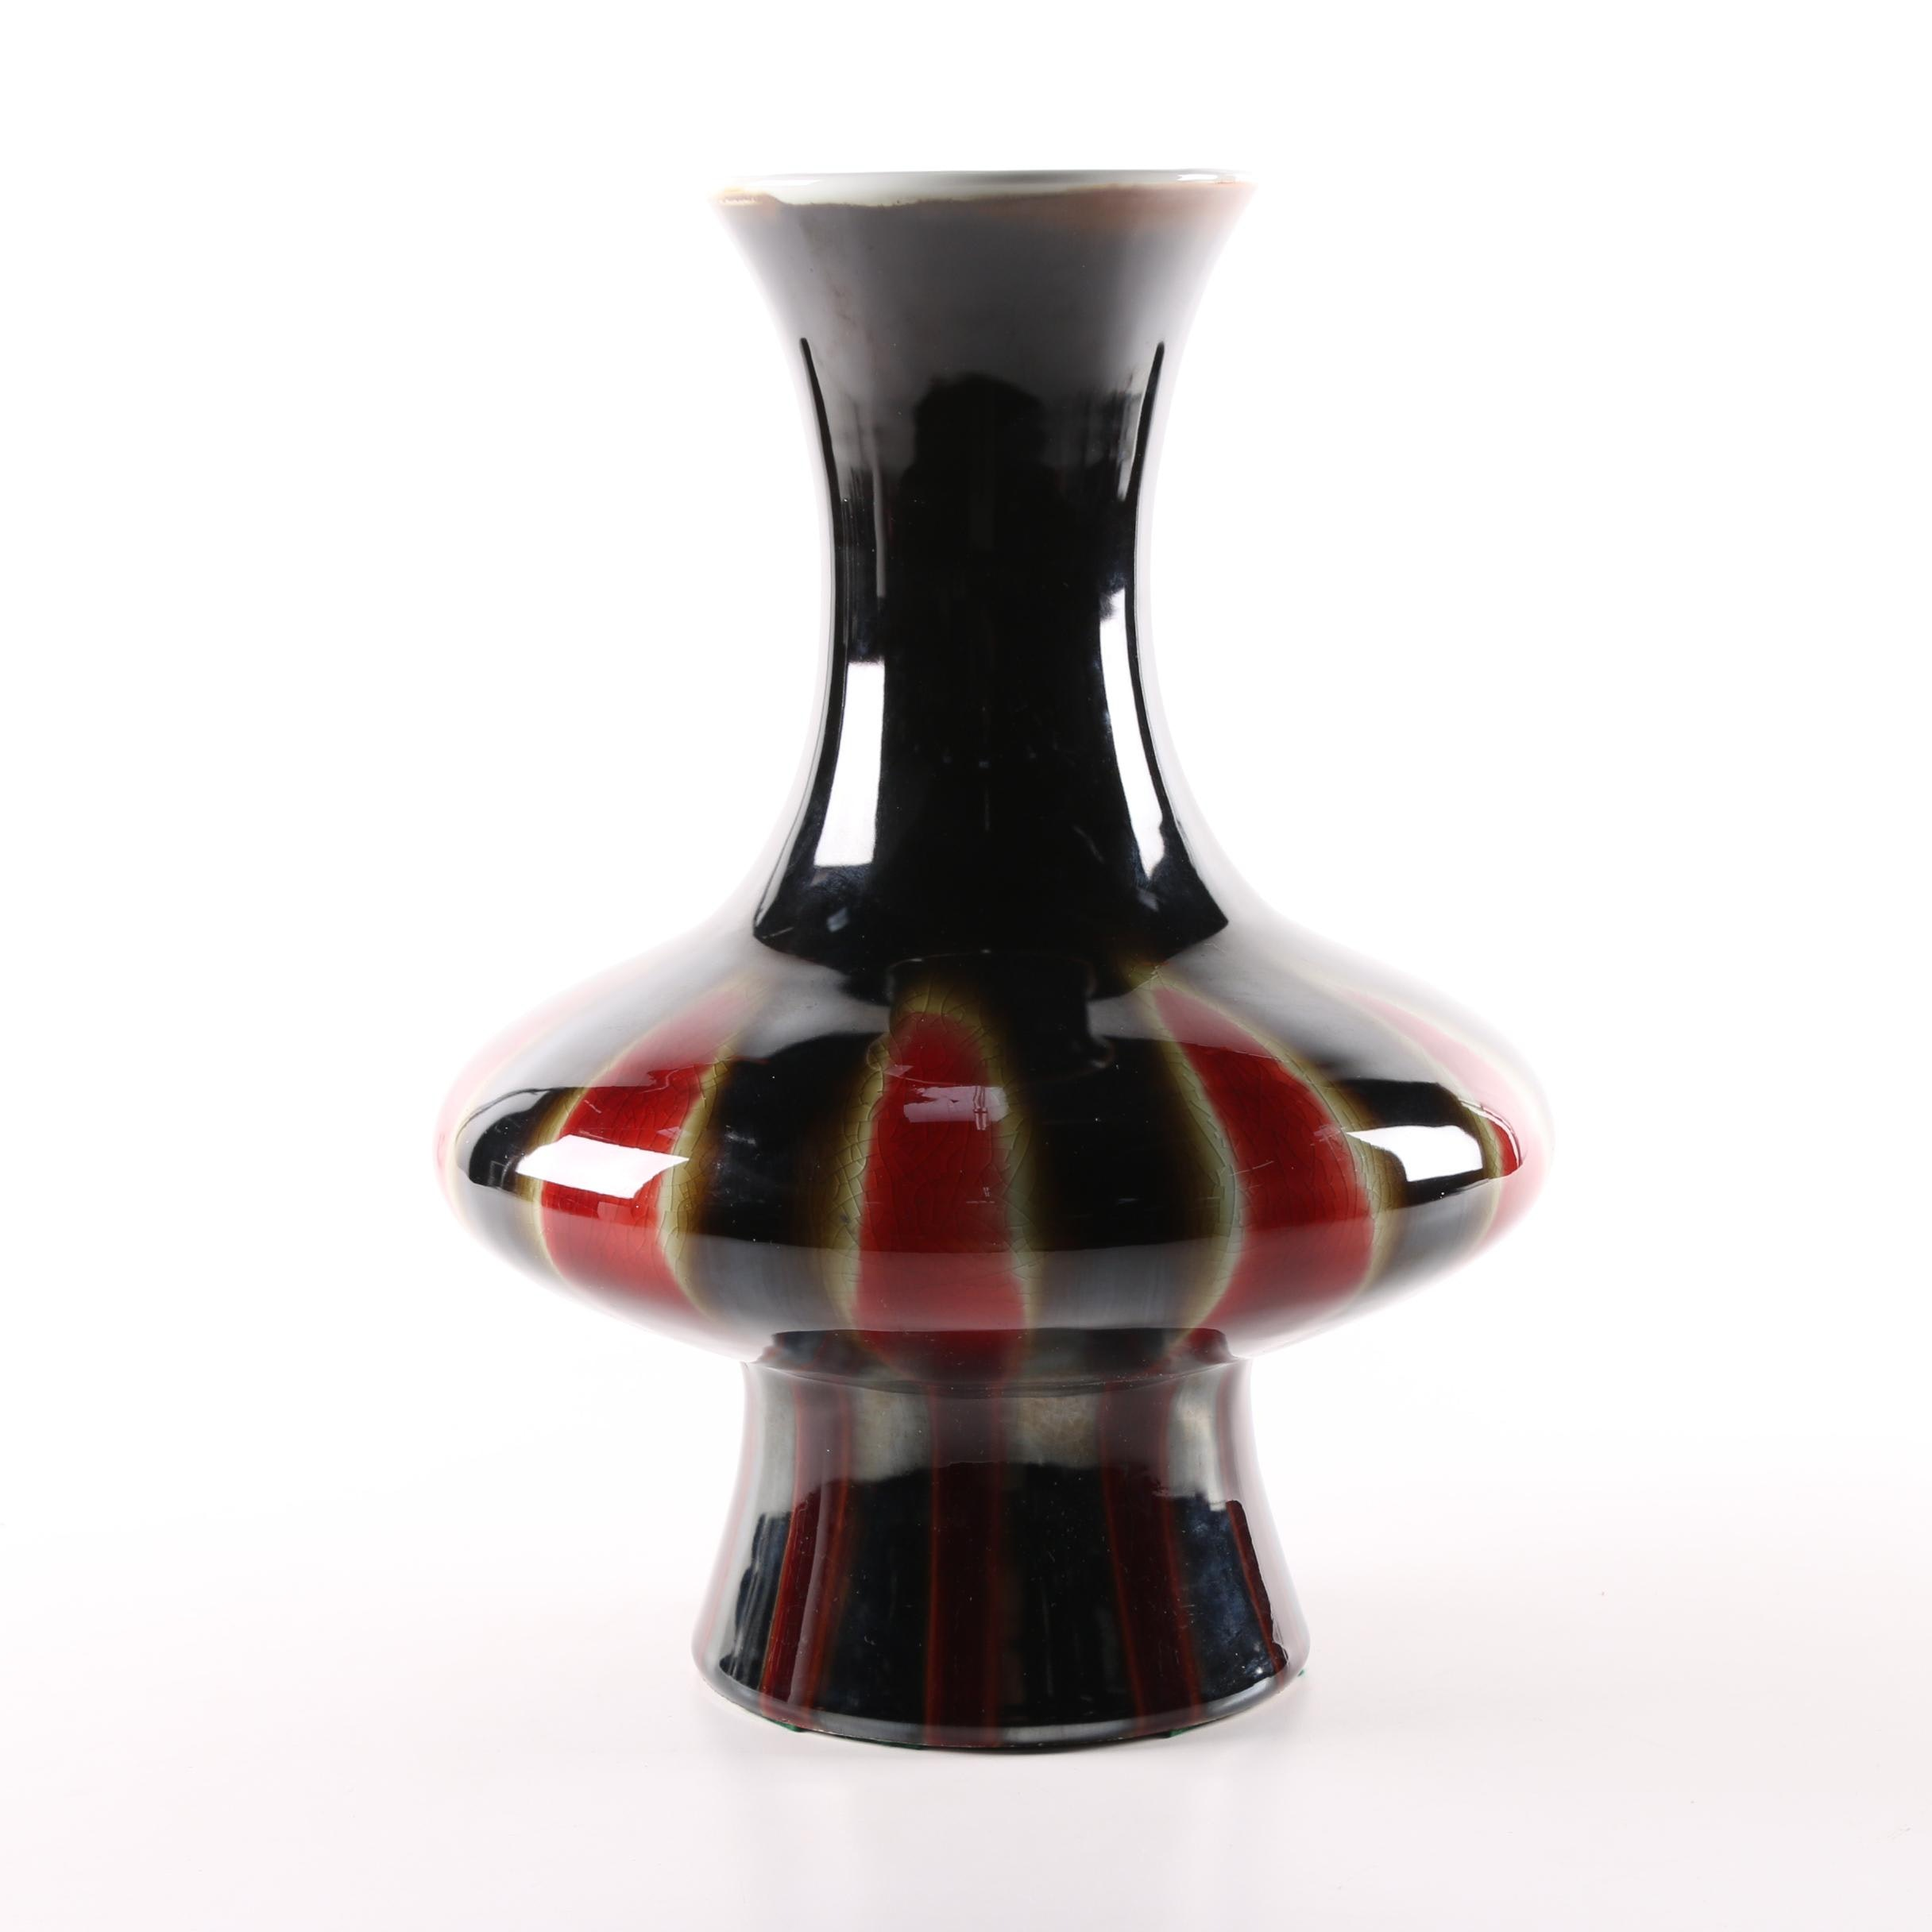 Maitland-Smith Drip Glazed Ceramic Vase